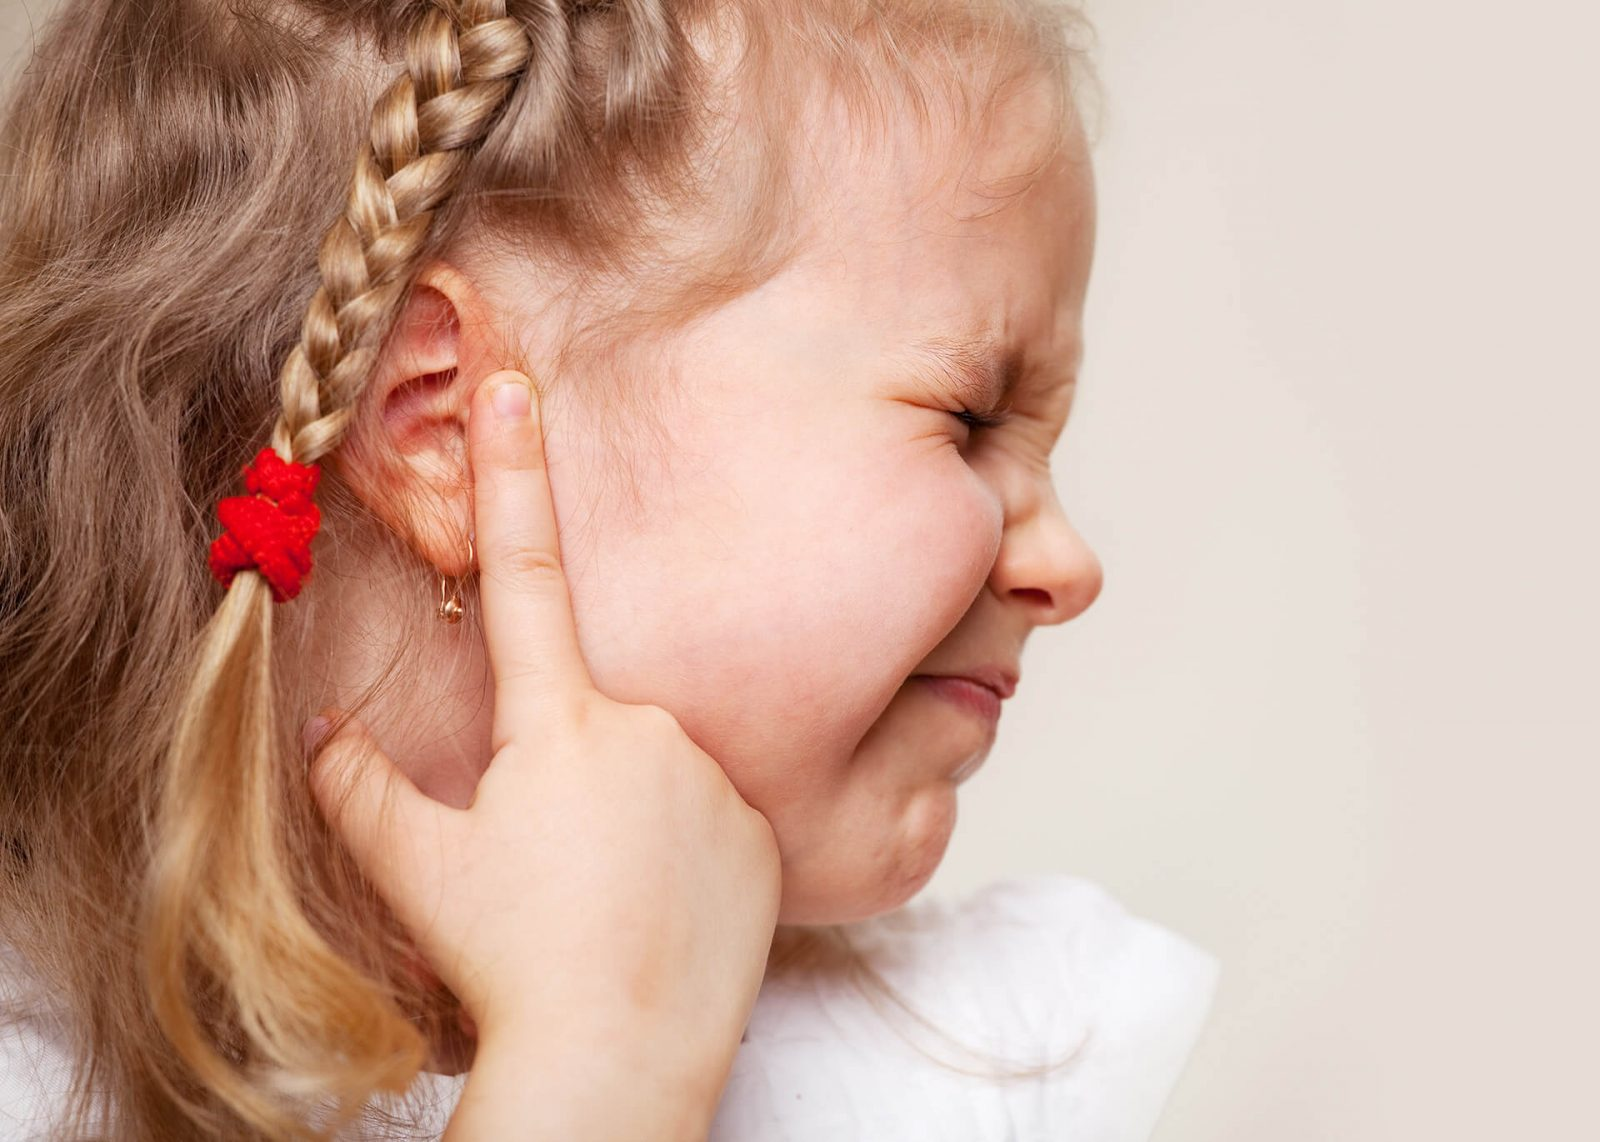 How common are ear infections in children and what can we do about it?